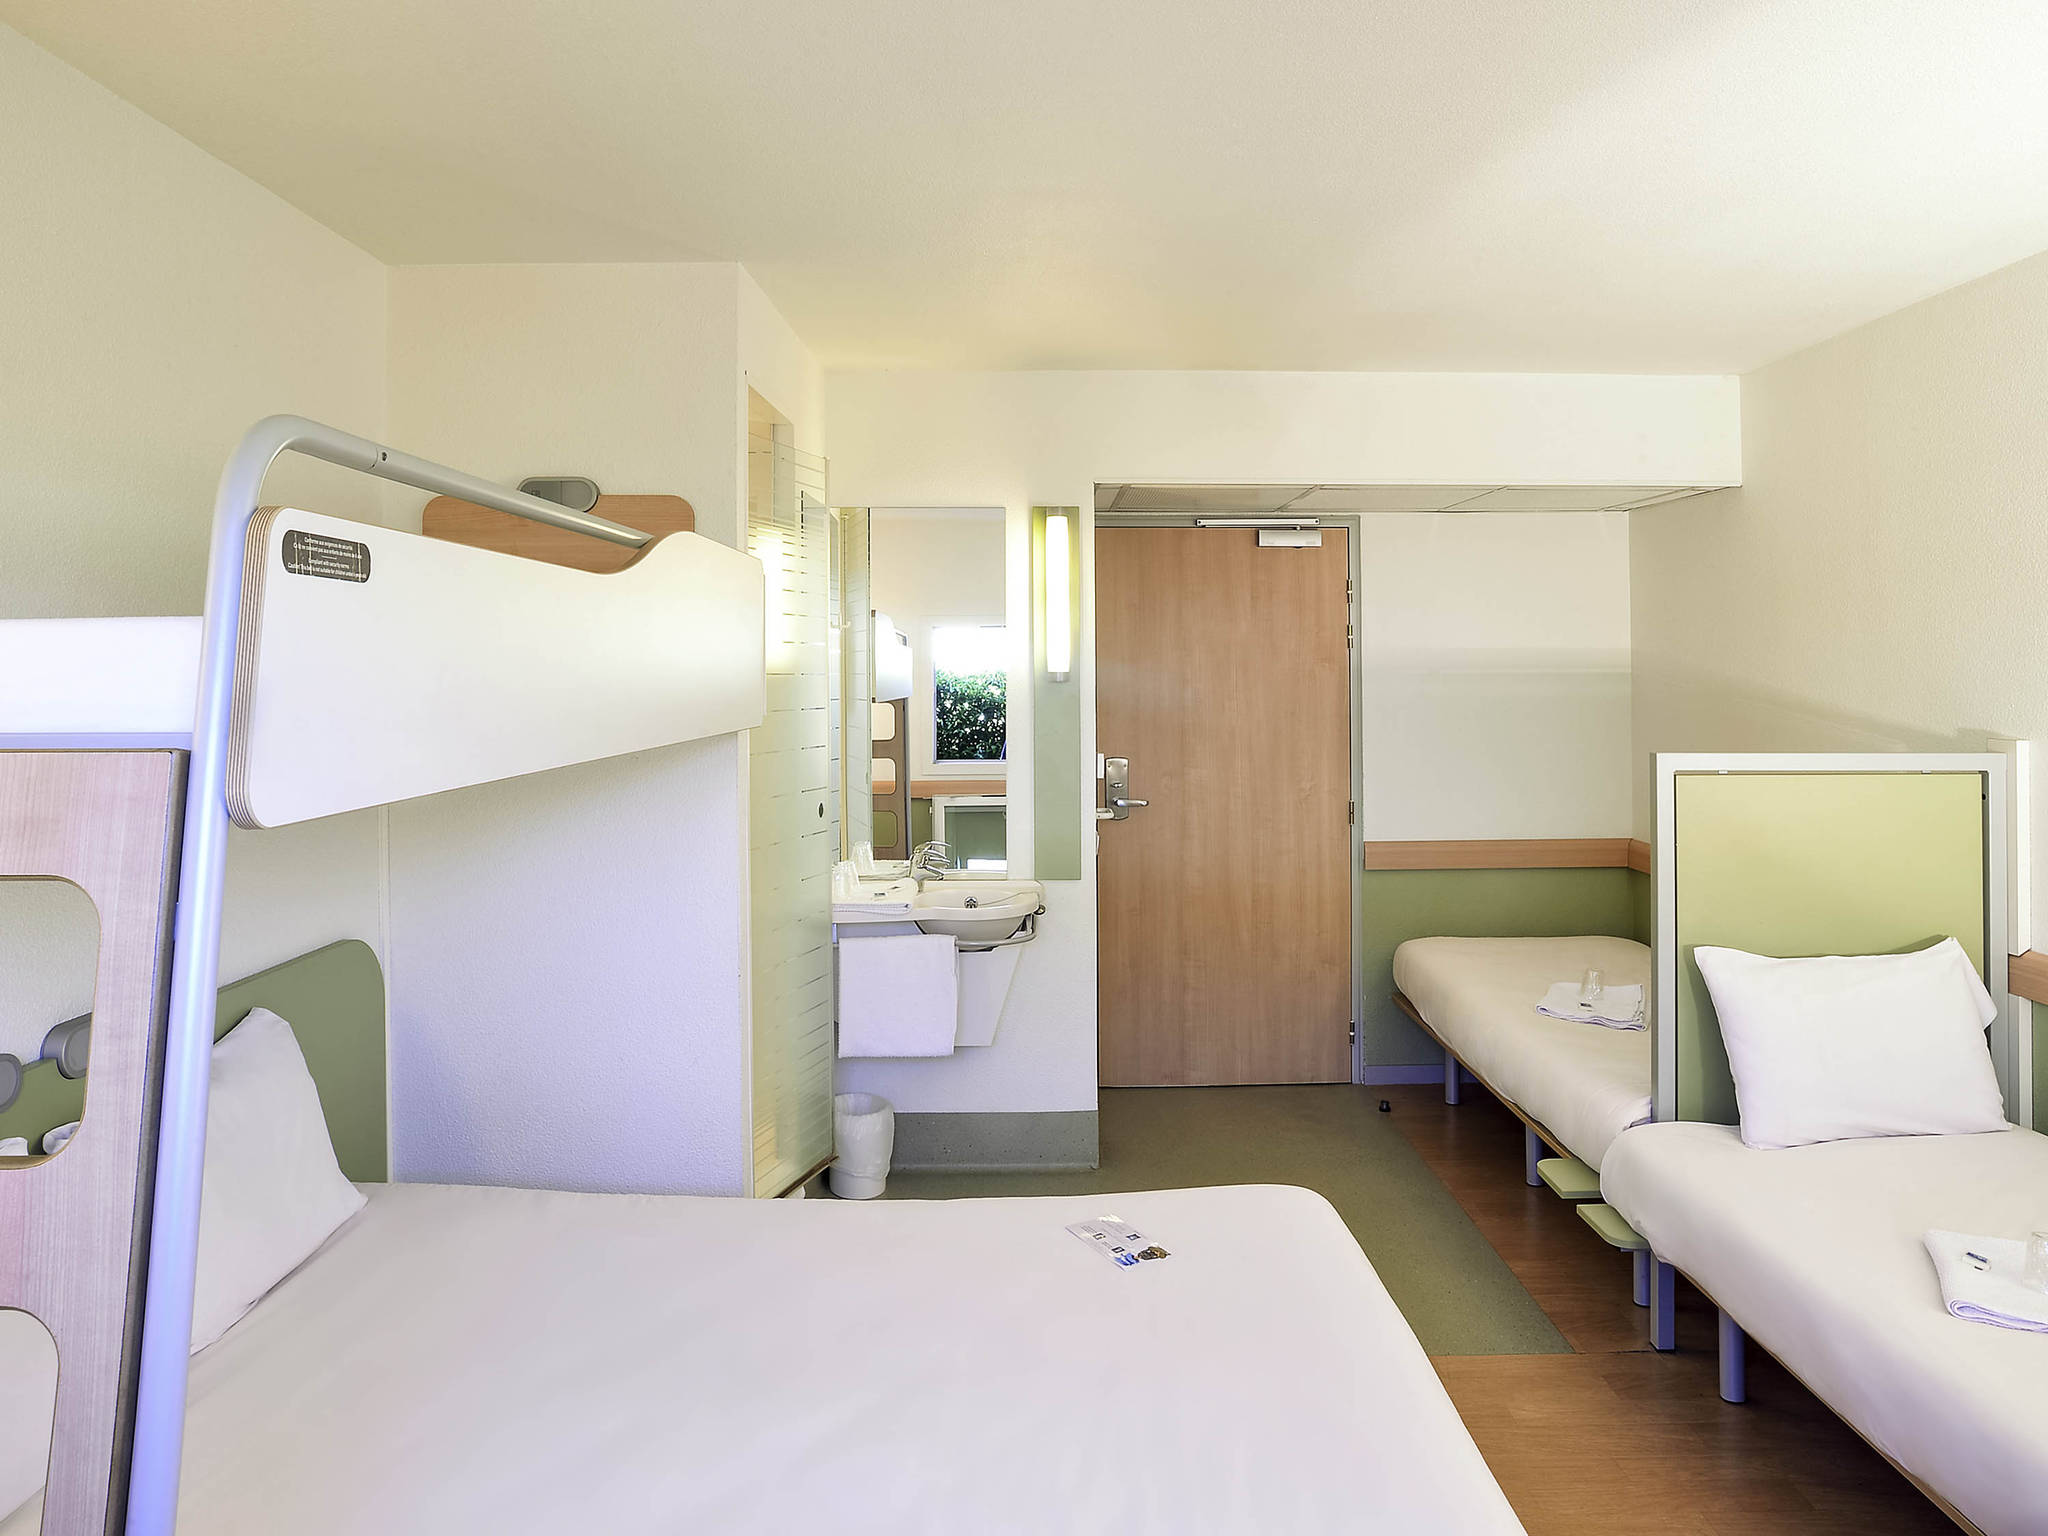 Chambre D Hote Issoire Hotel In Issoire Ibis Budget Issoire